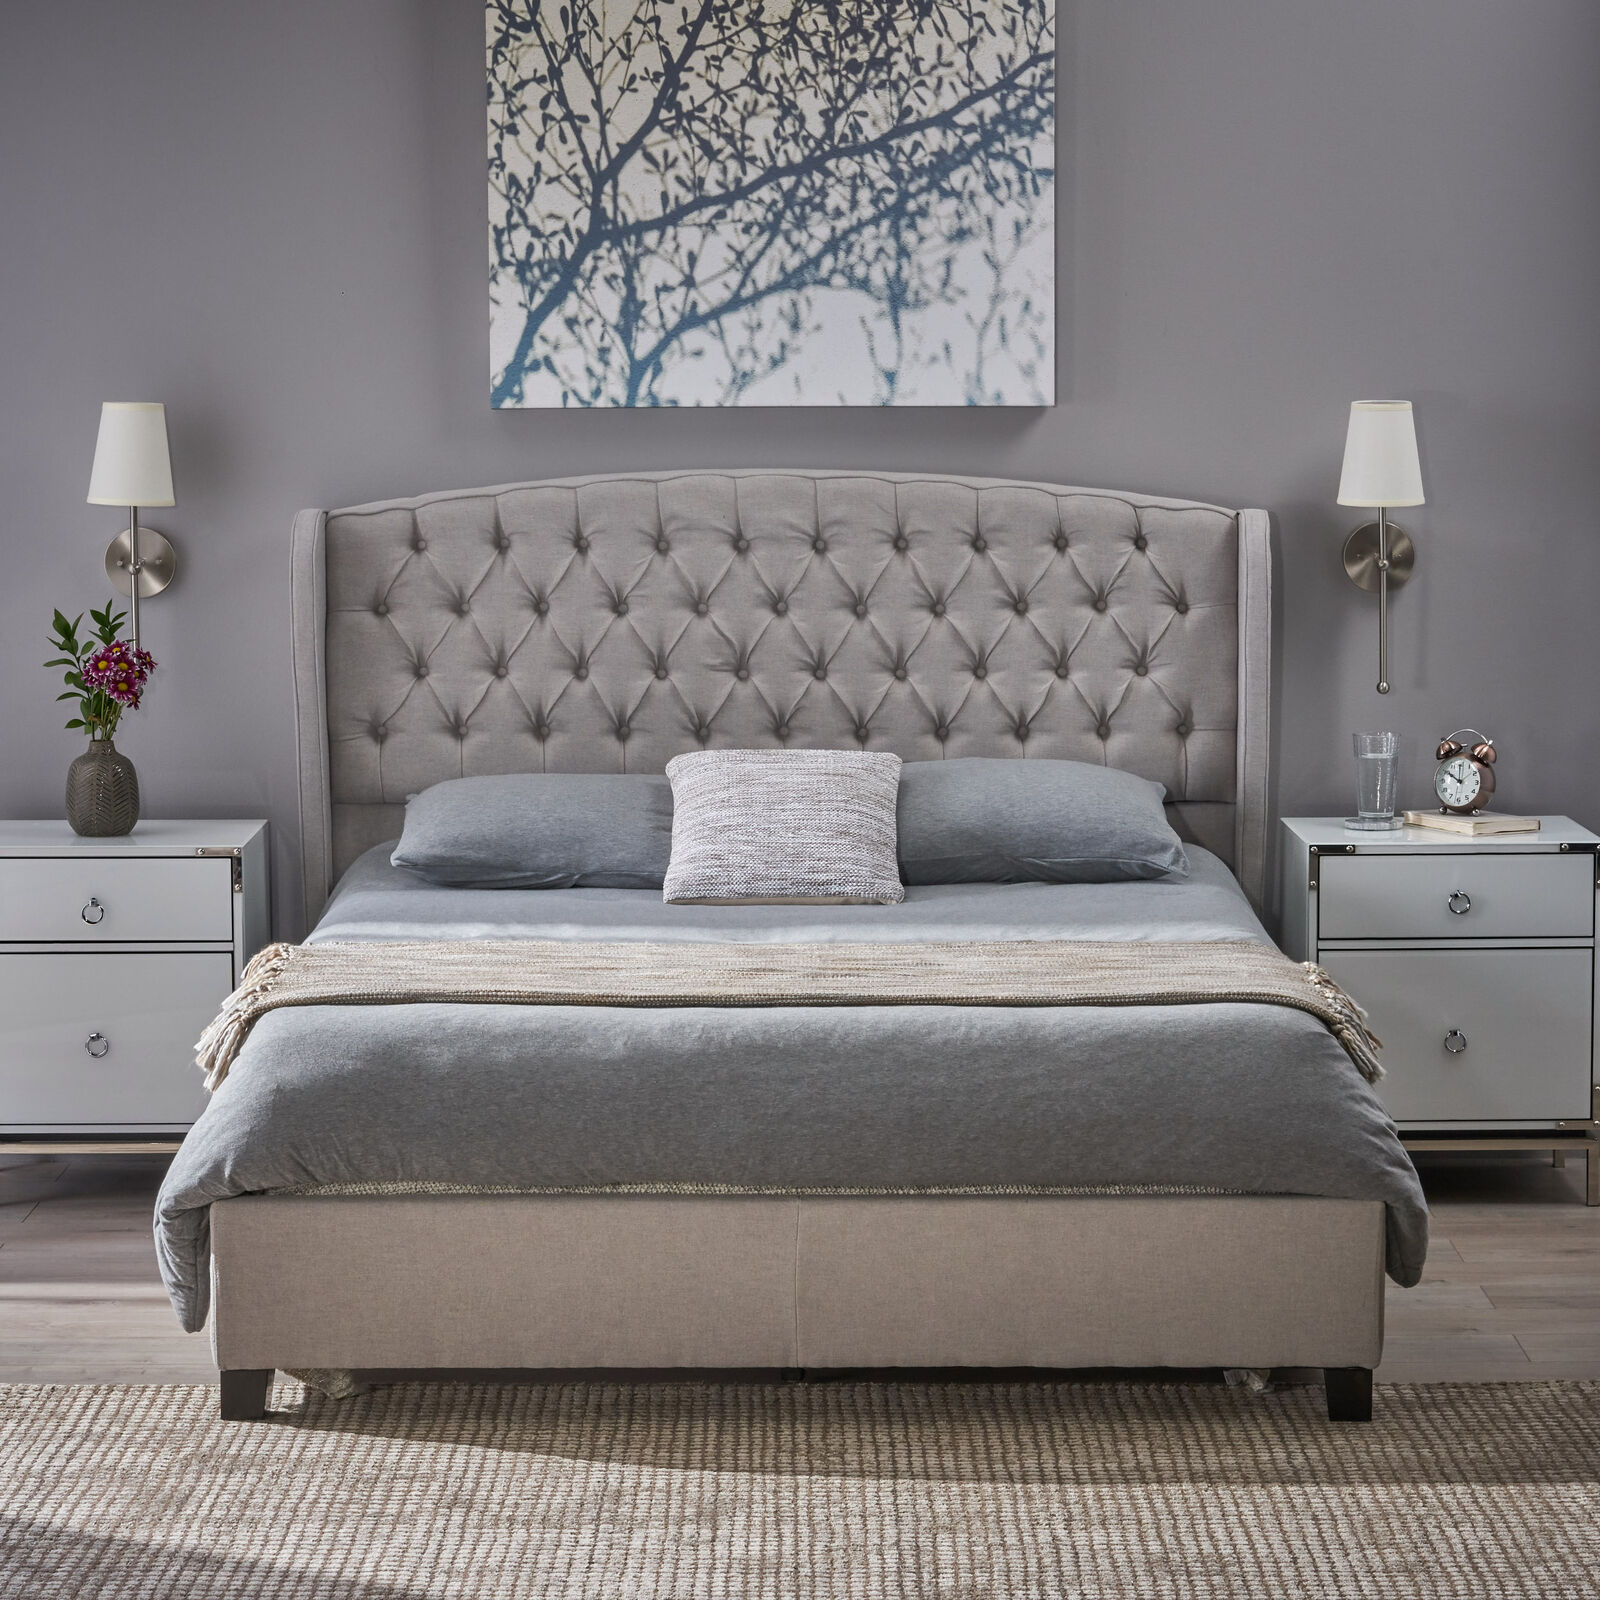 Twilight Fully Upholstered Fabric Queen Bed Set Beds & Bed Frames